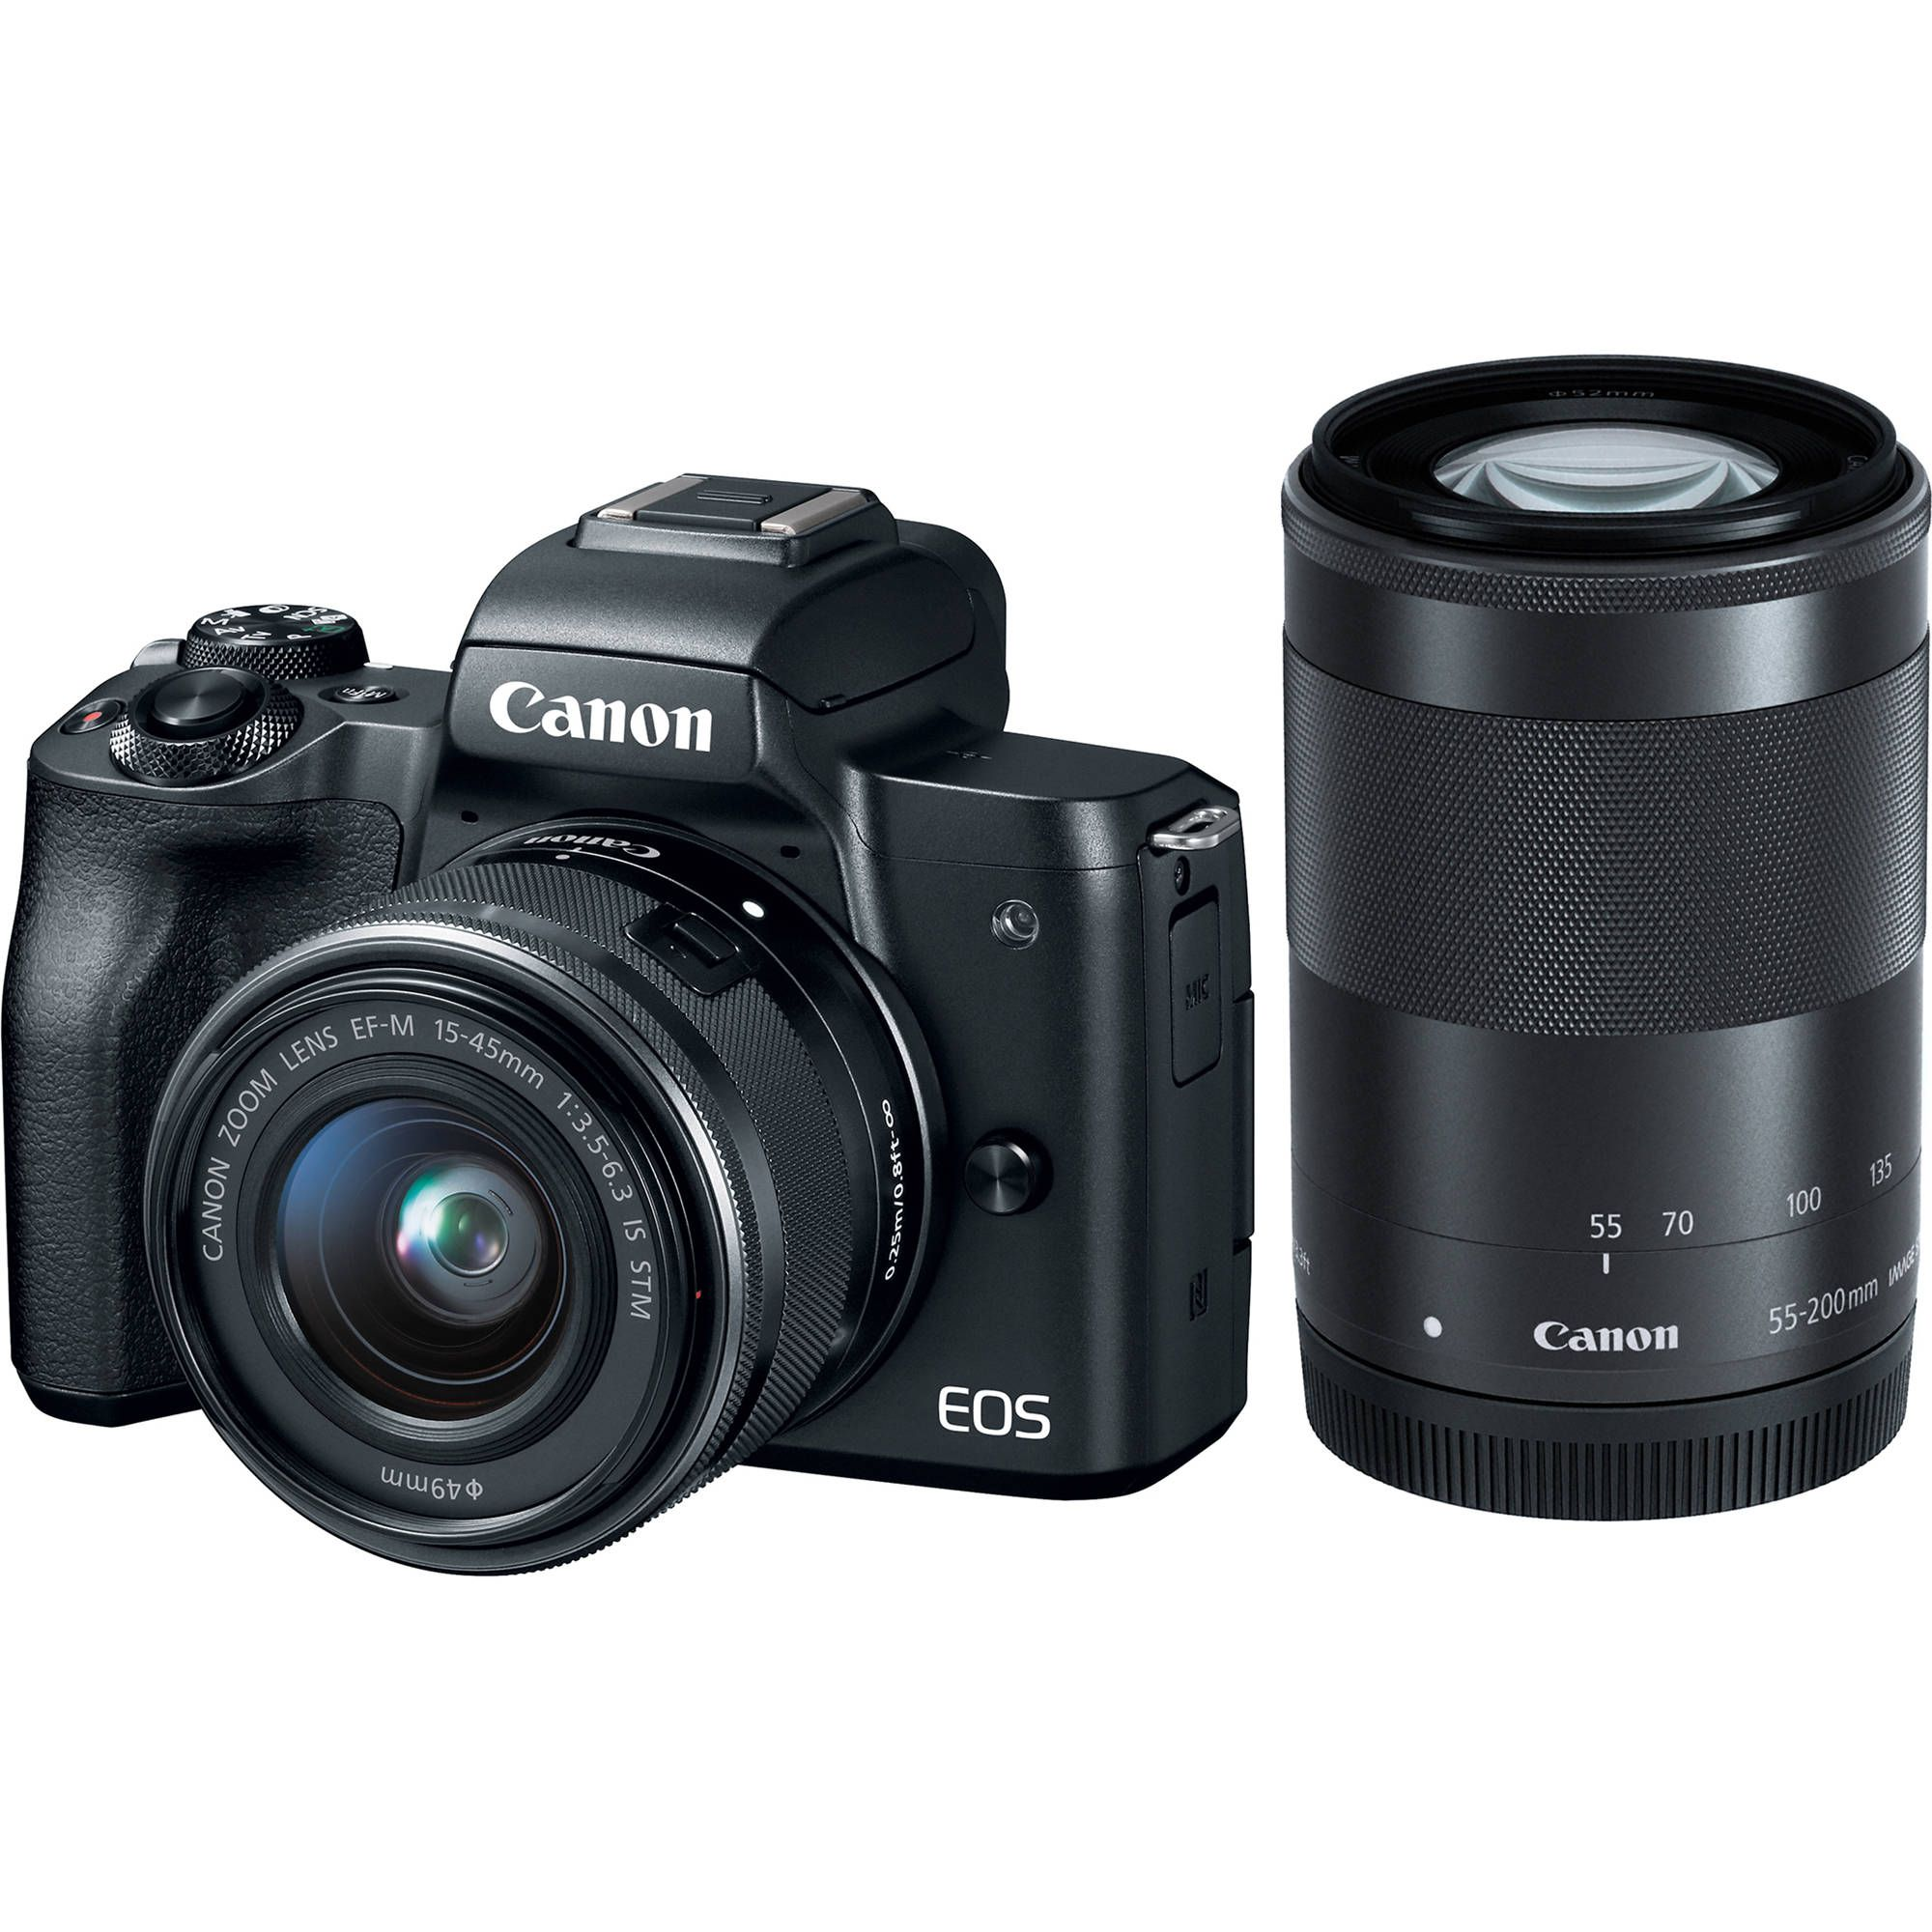 Canon Eos M50 Mirrorless Digital Camera With 15 45mm And 55 200mm Lenses Black Eos M50 Canon Eos M50 Mirrorless Camera